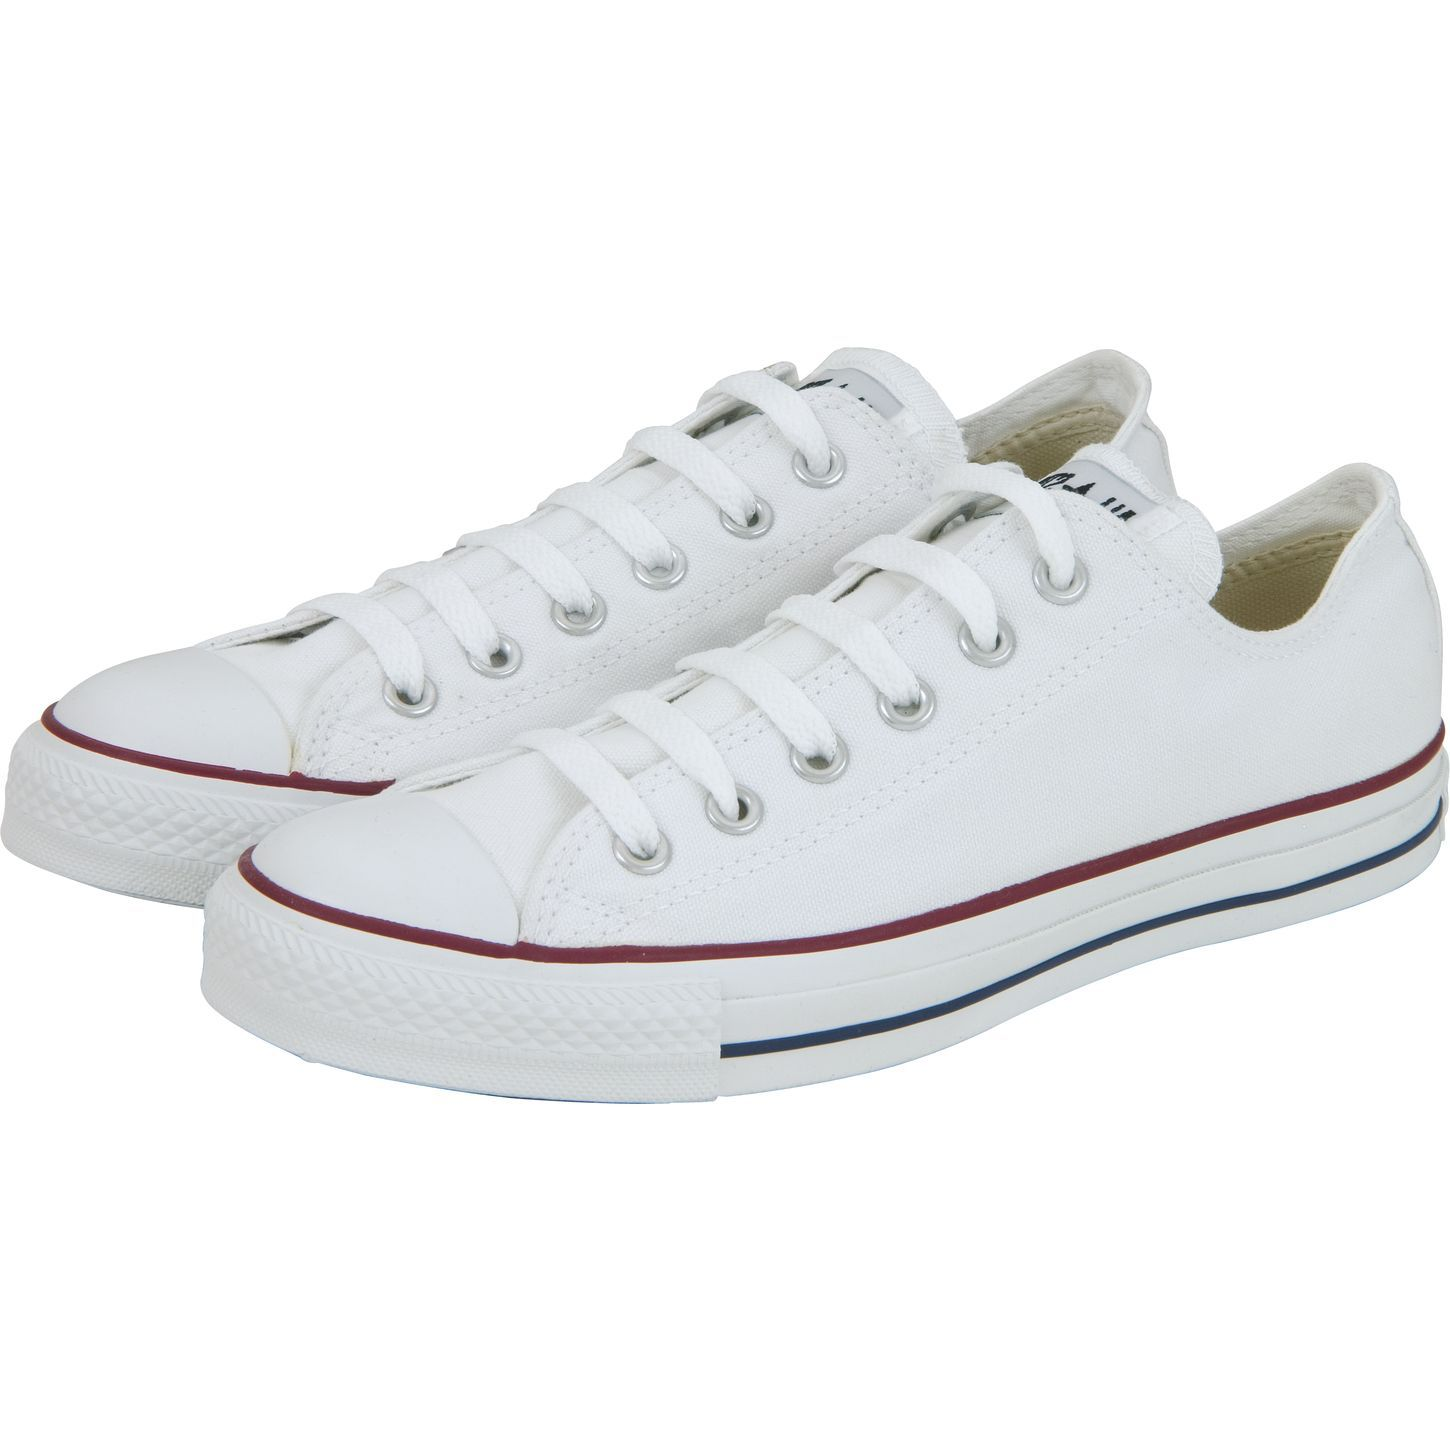 Converse All Star Low Tops White